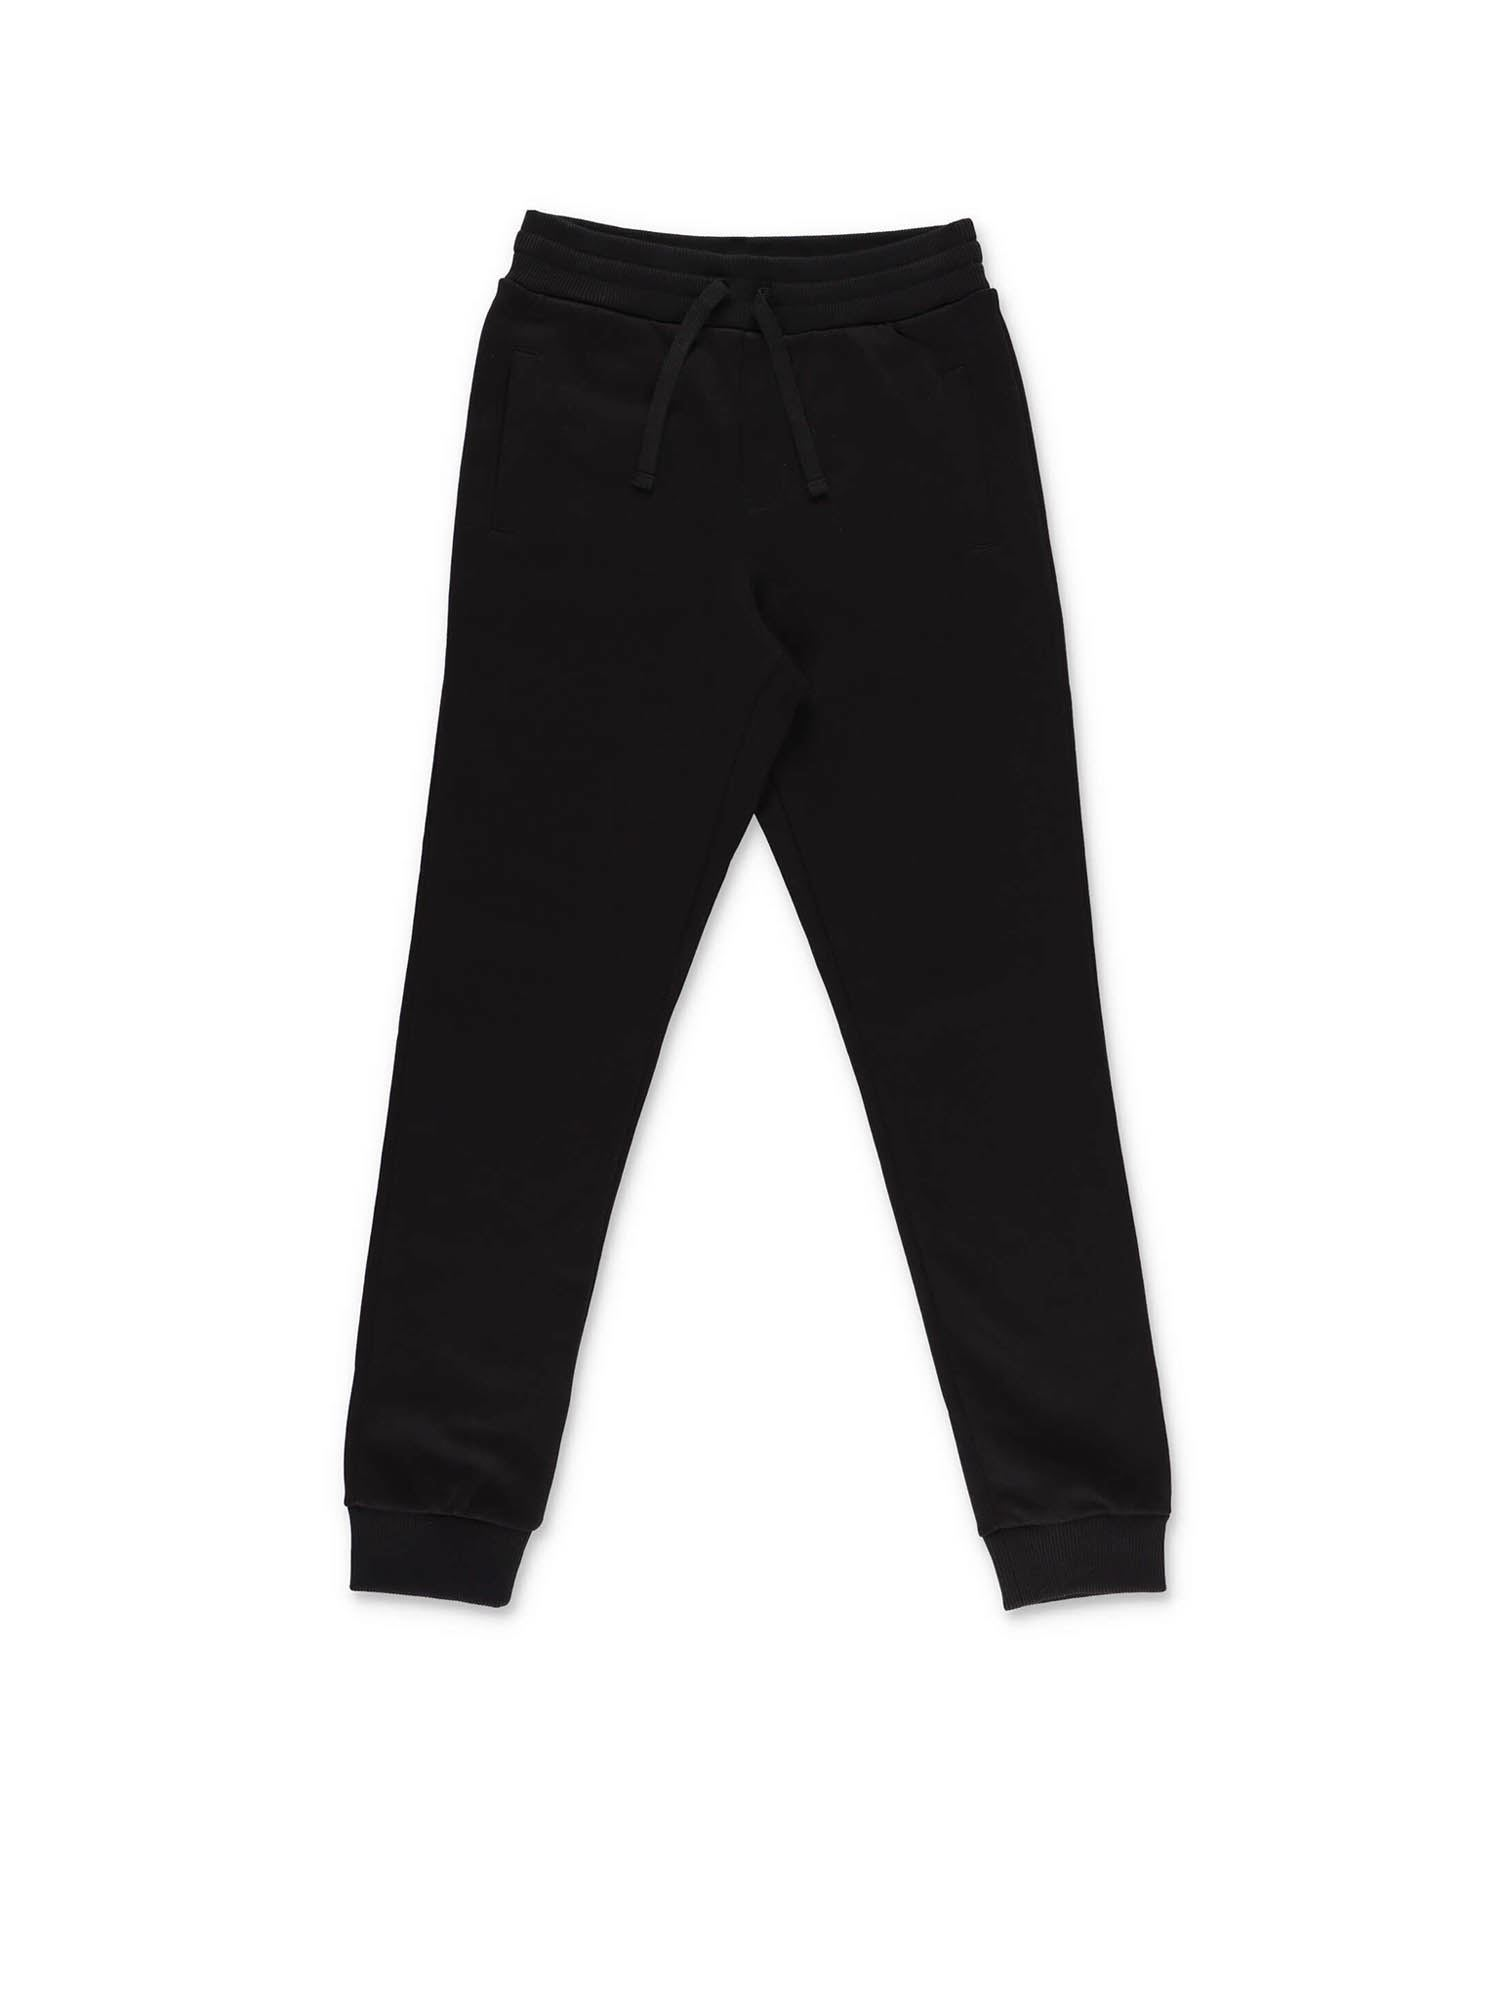 Dolce & Gabbana Jr BLACK SWEAT PANTS WITH LOGO